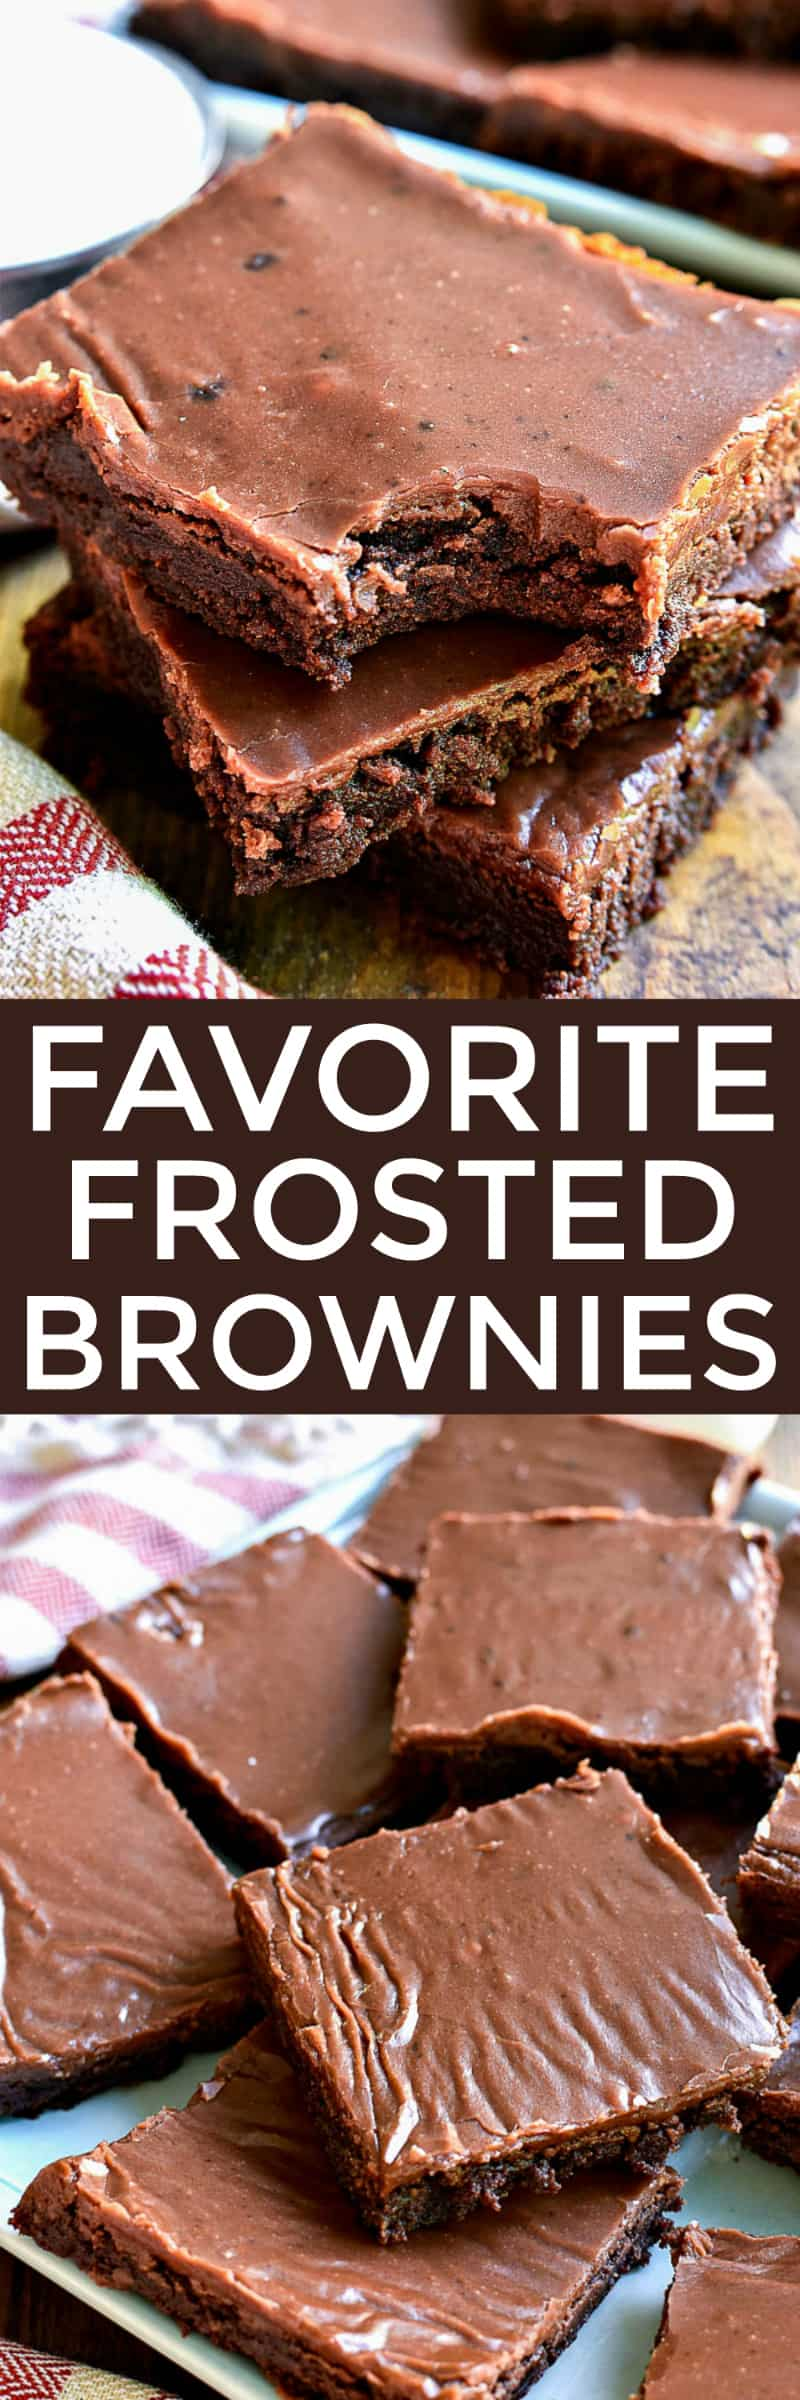 Collage image of frosted brownies